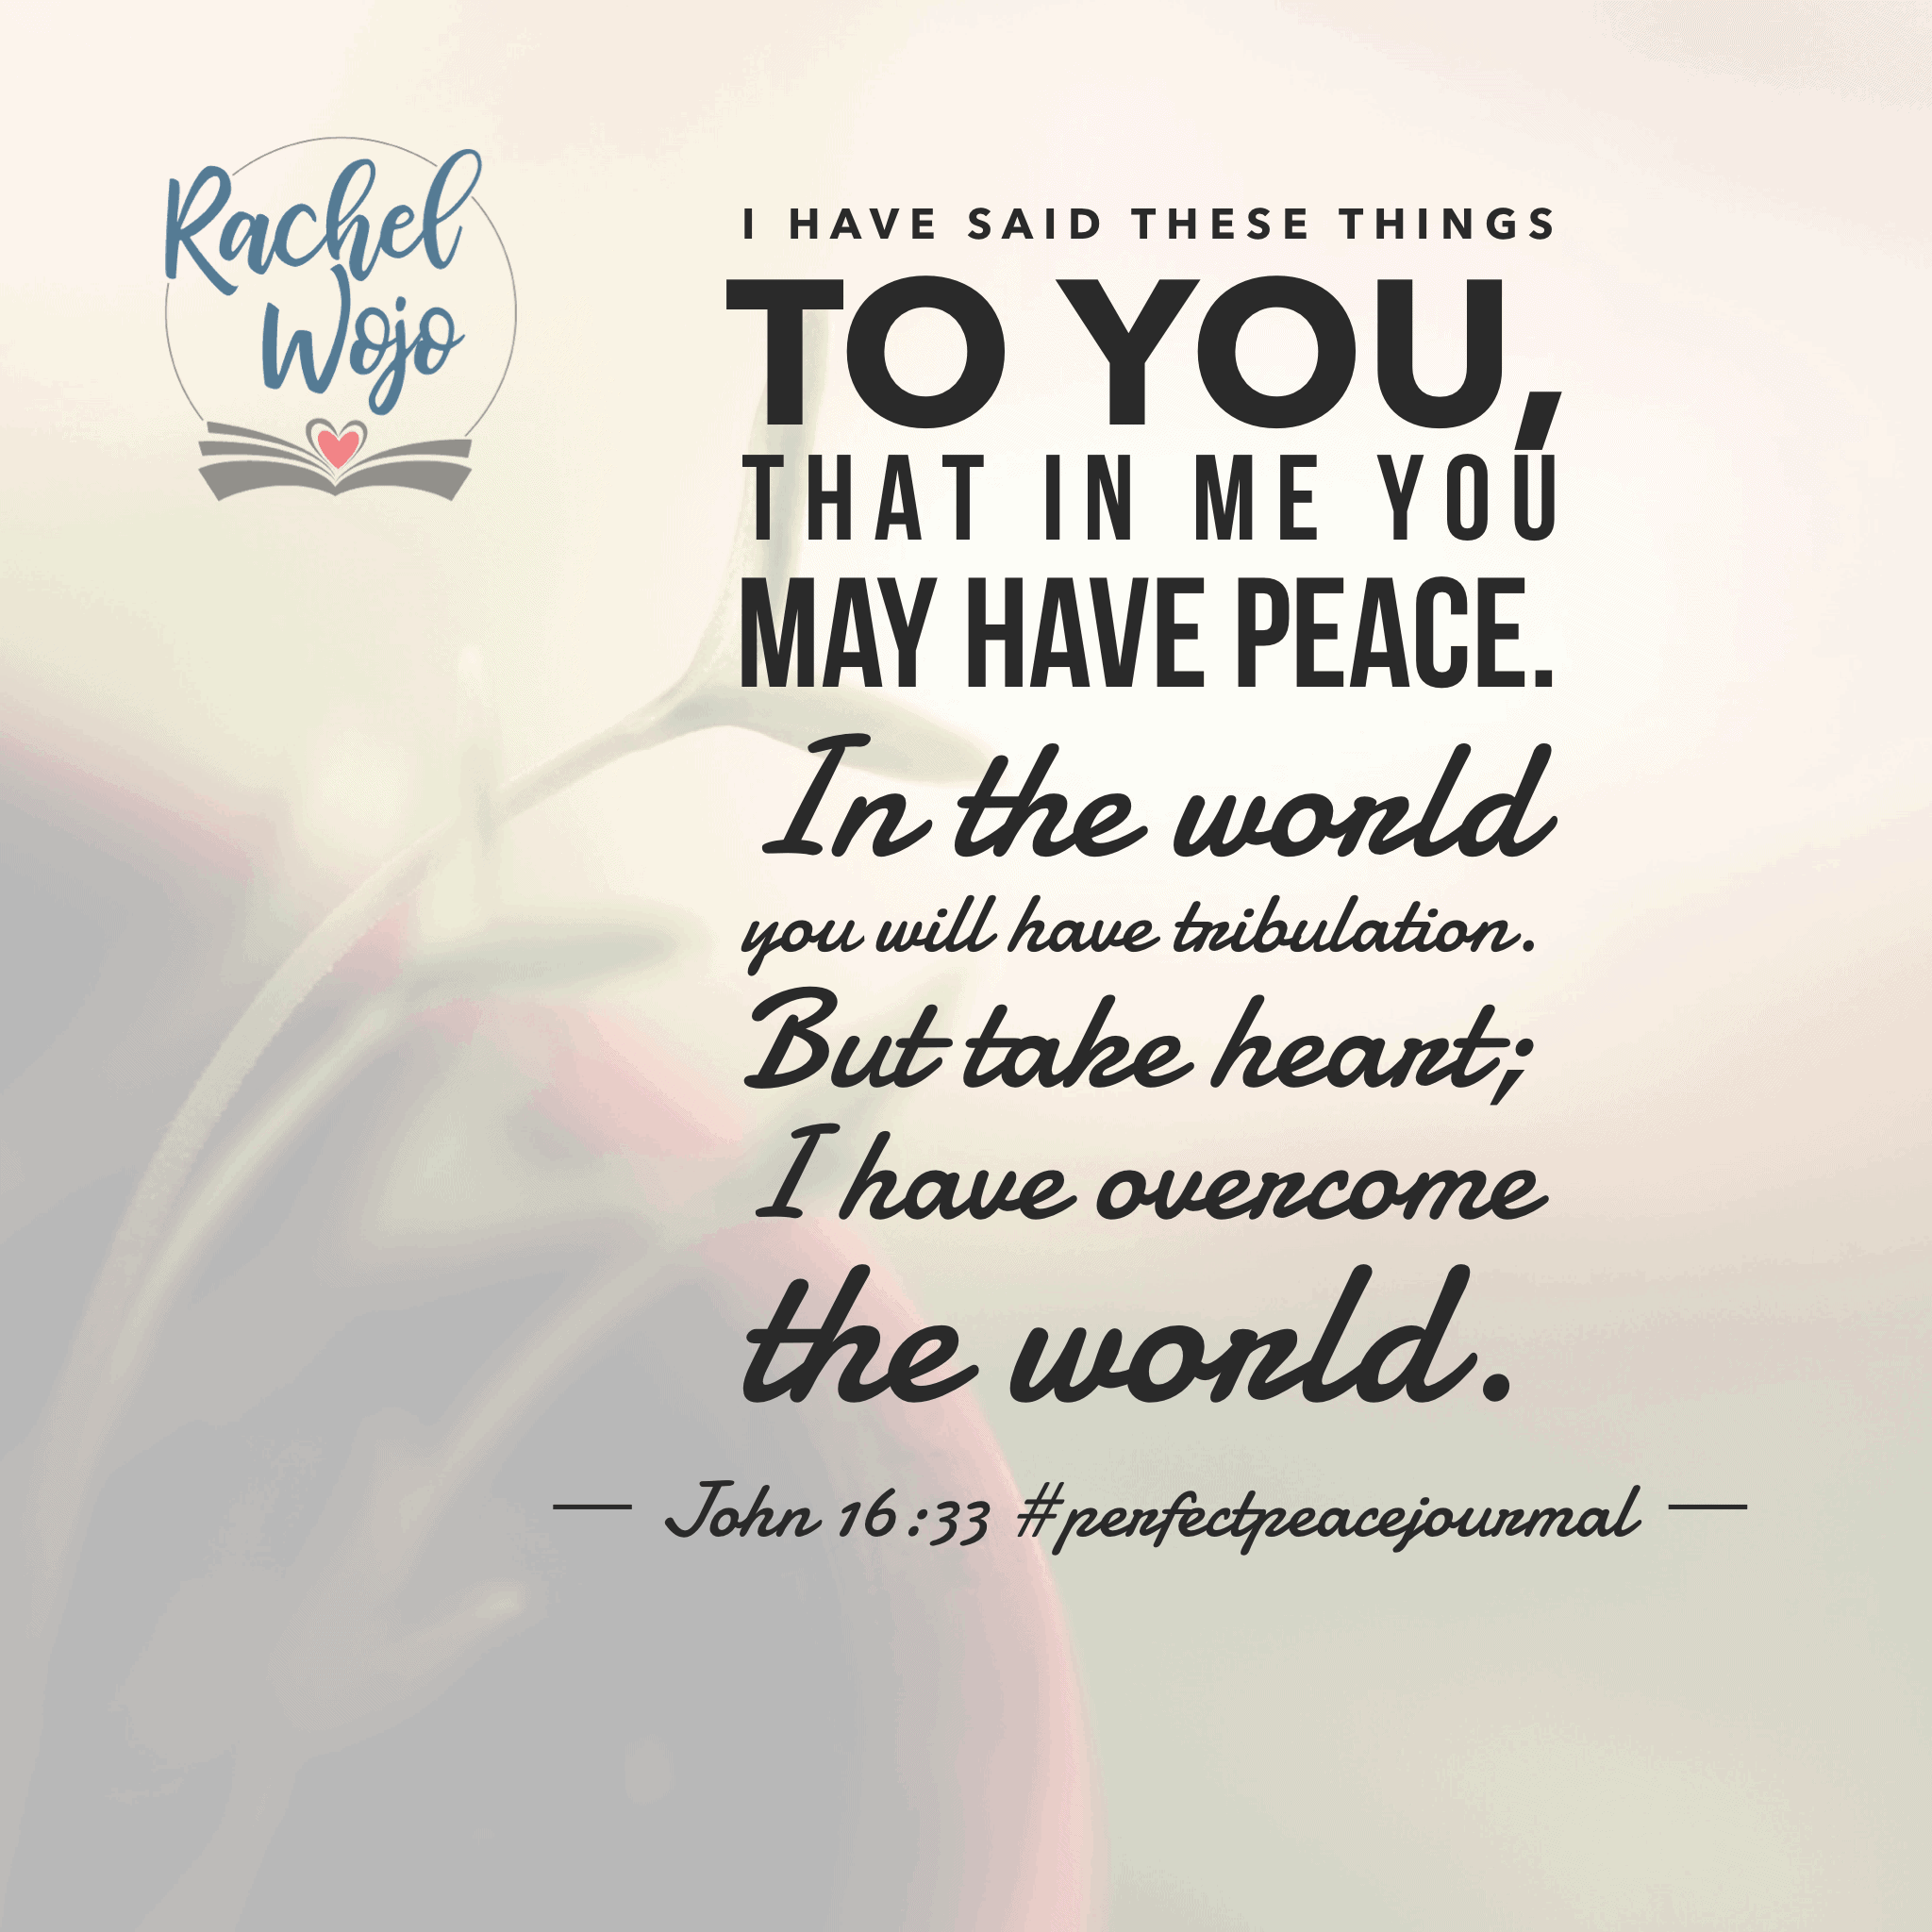 Peace won't be found in anything or anyone except Jesus. In Him, we have perfect peace. So thankful for this month of June and the#perfectpeacejournal#biblereadingplan! Tomorrow's July 1st; be sure to join in for a month of recognizing God is bigger than whatever we face